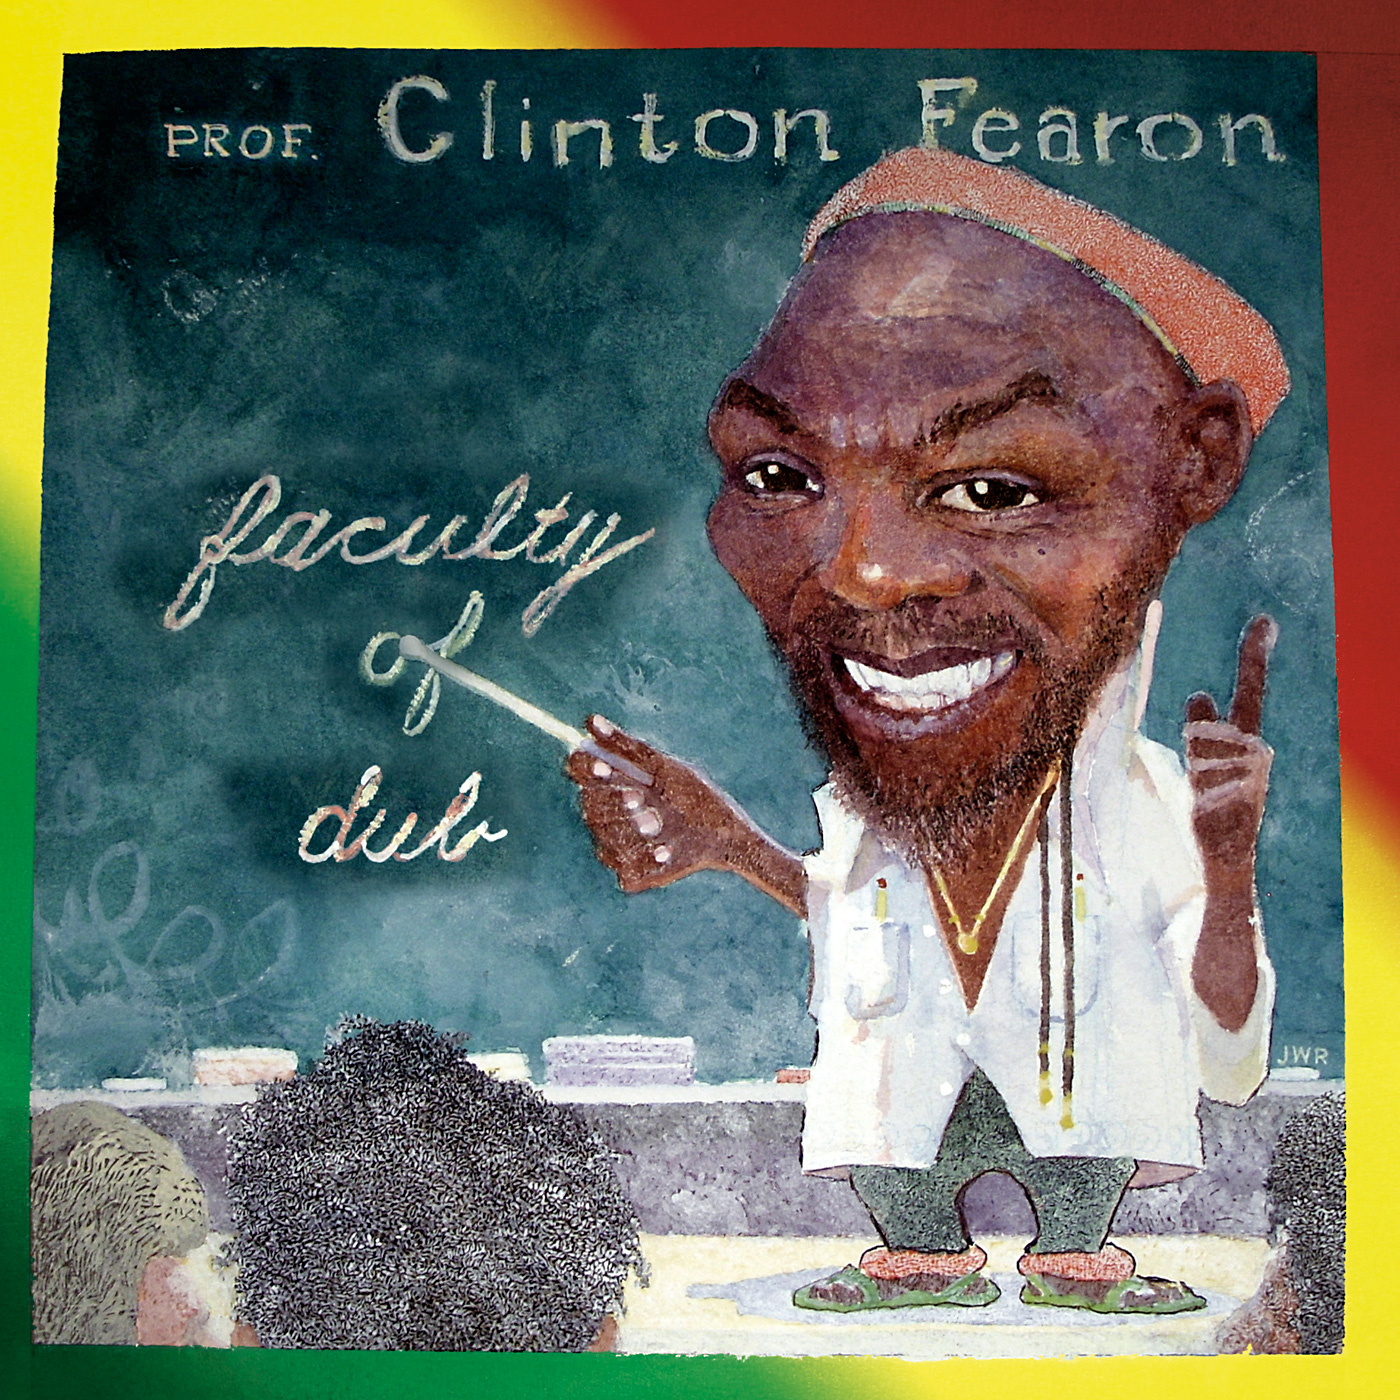 Clinton Fearon - Faculty Of Dub (2008)